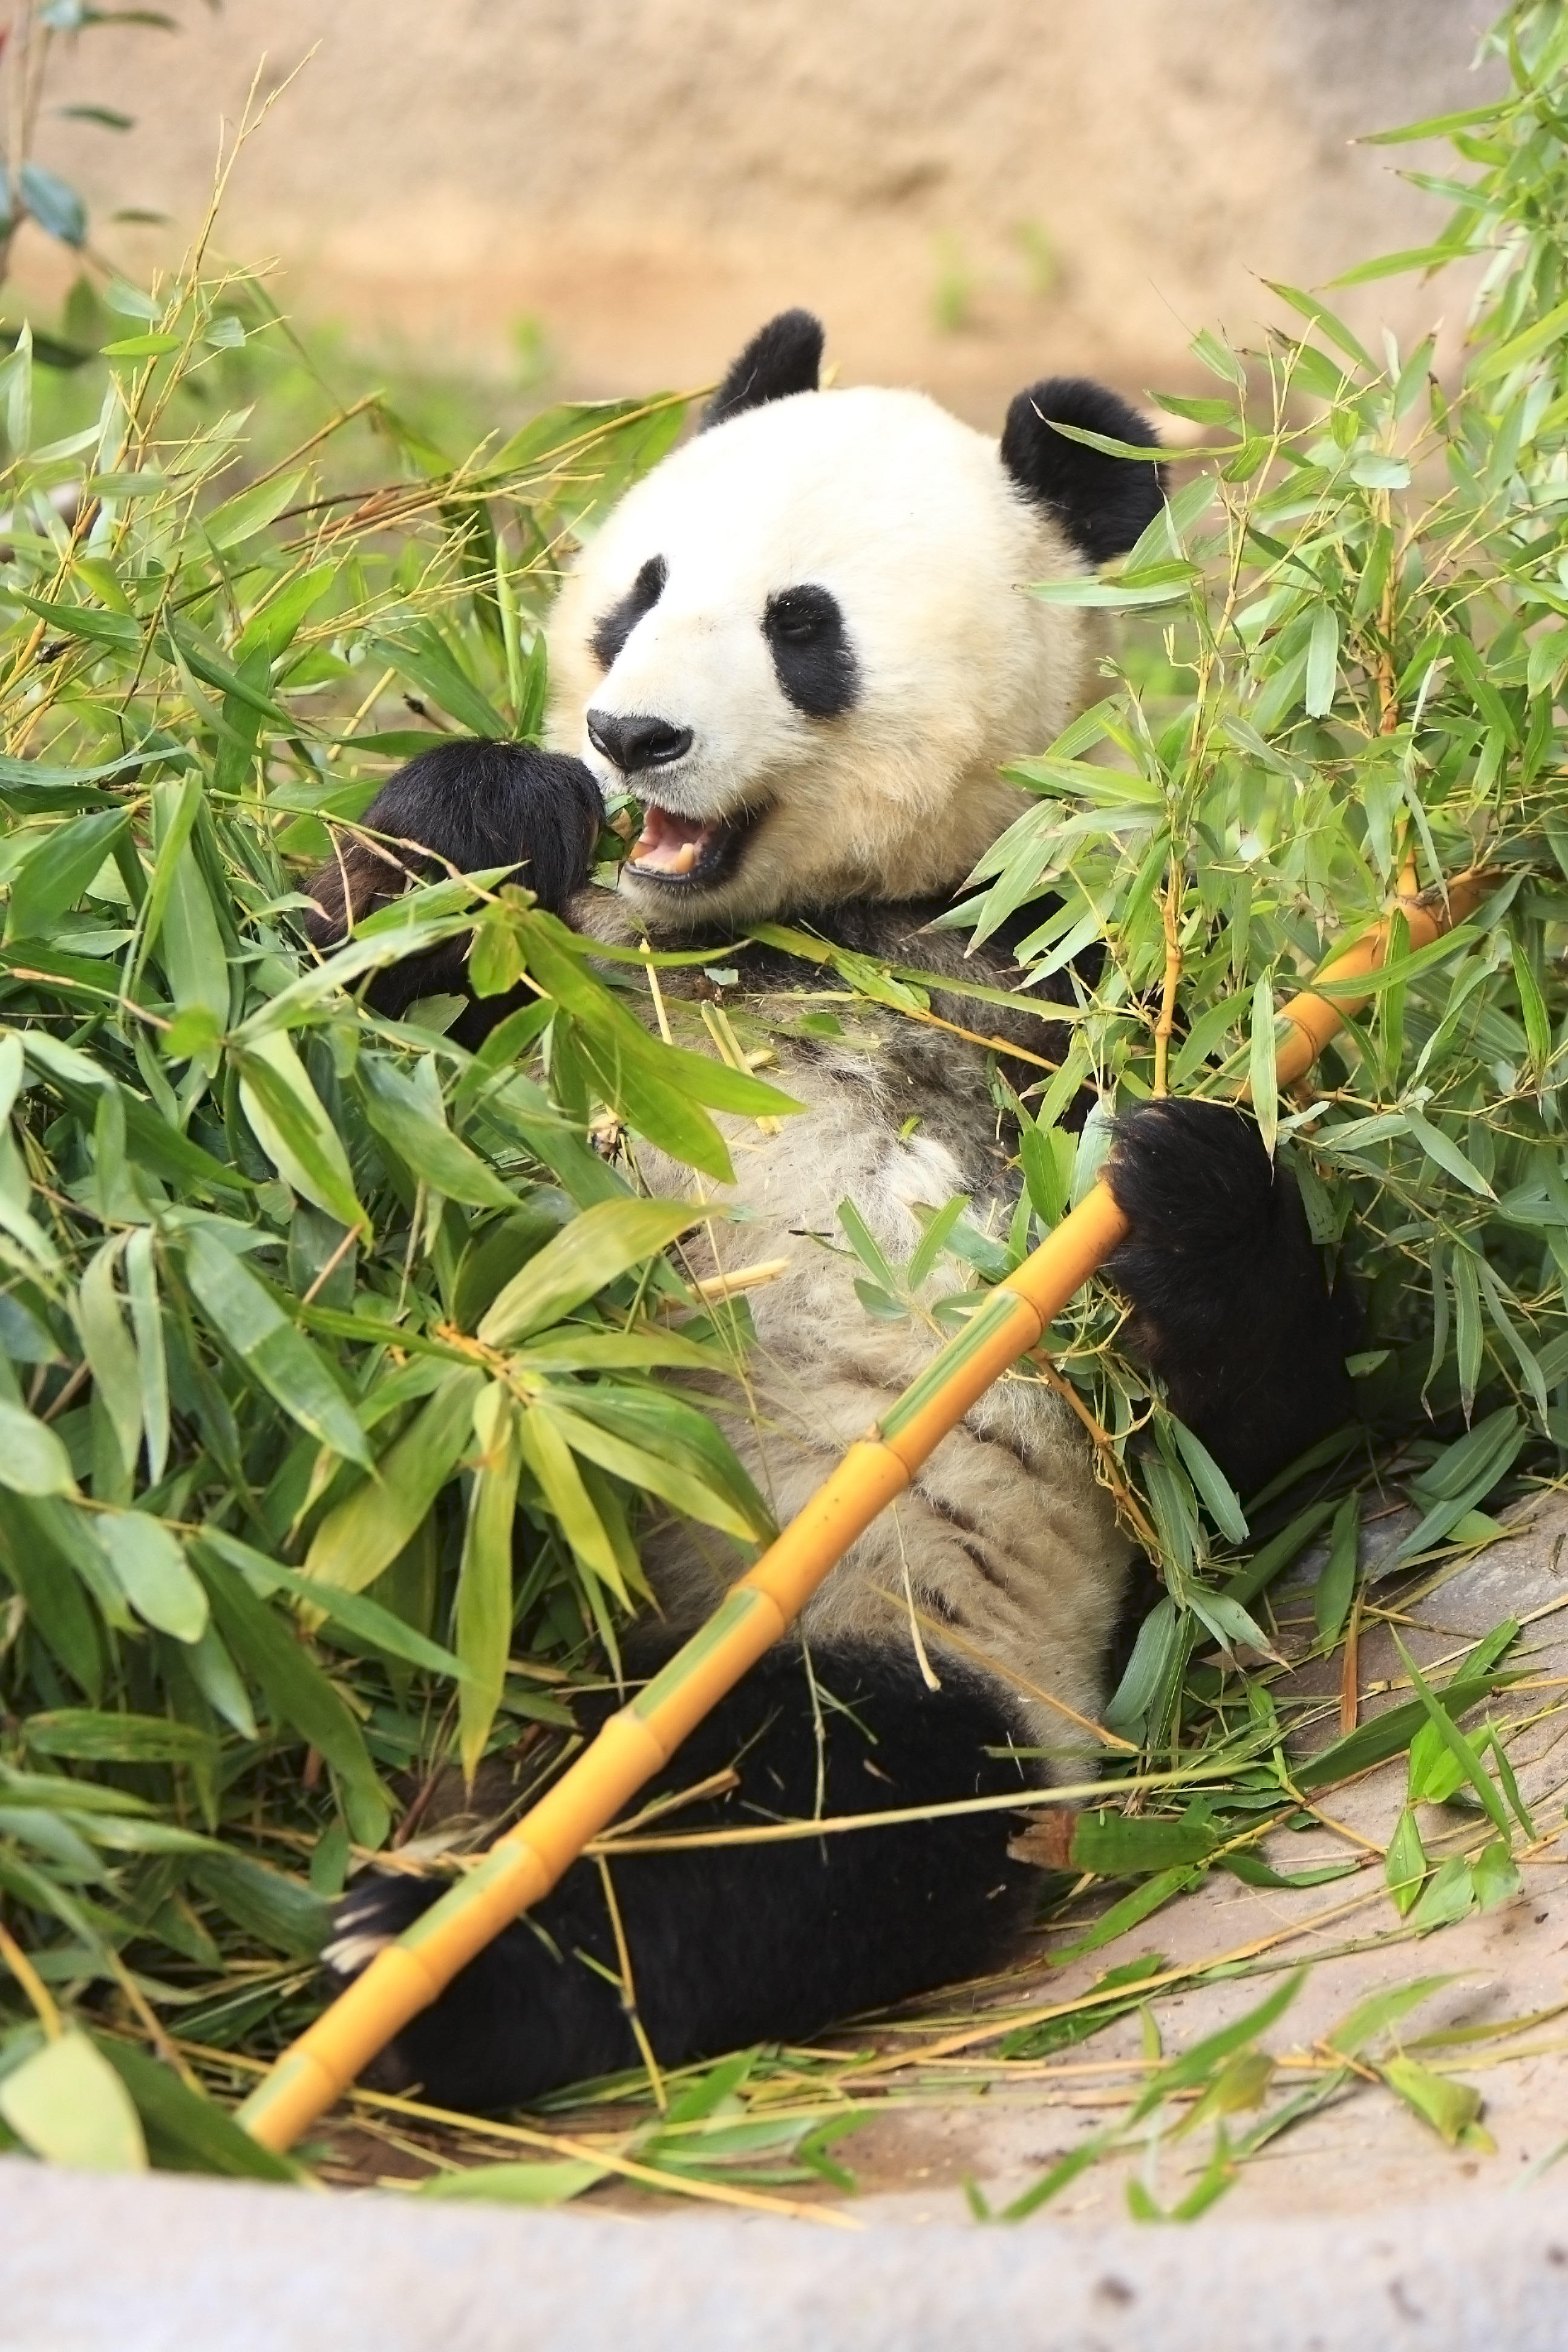 93296 download wallpaper Animals, Panda, Funny, Bamboo, Leaves screensavers and pictures for free